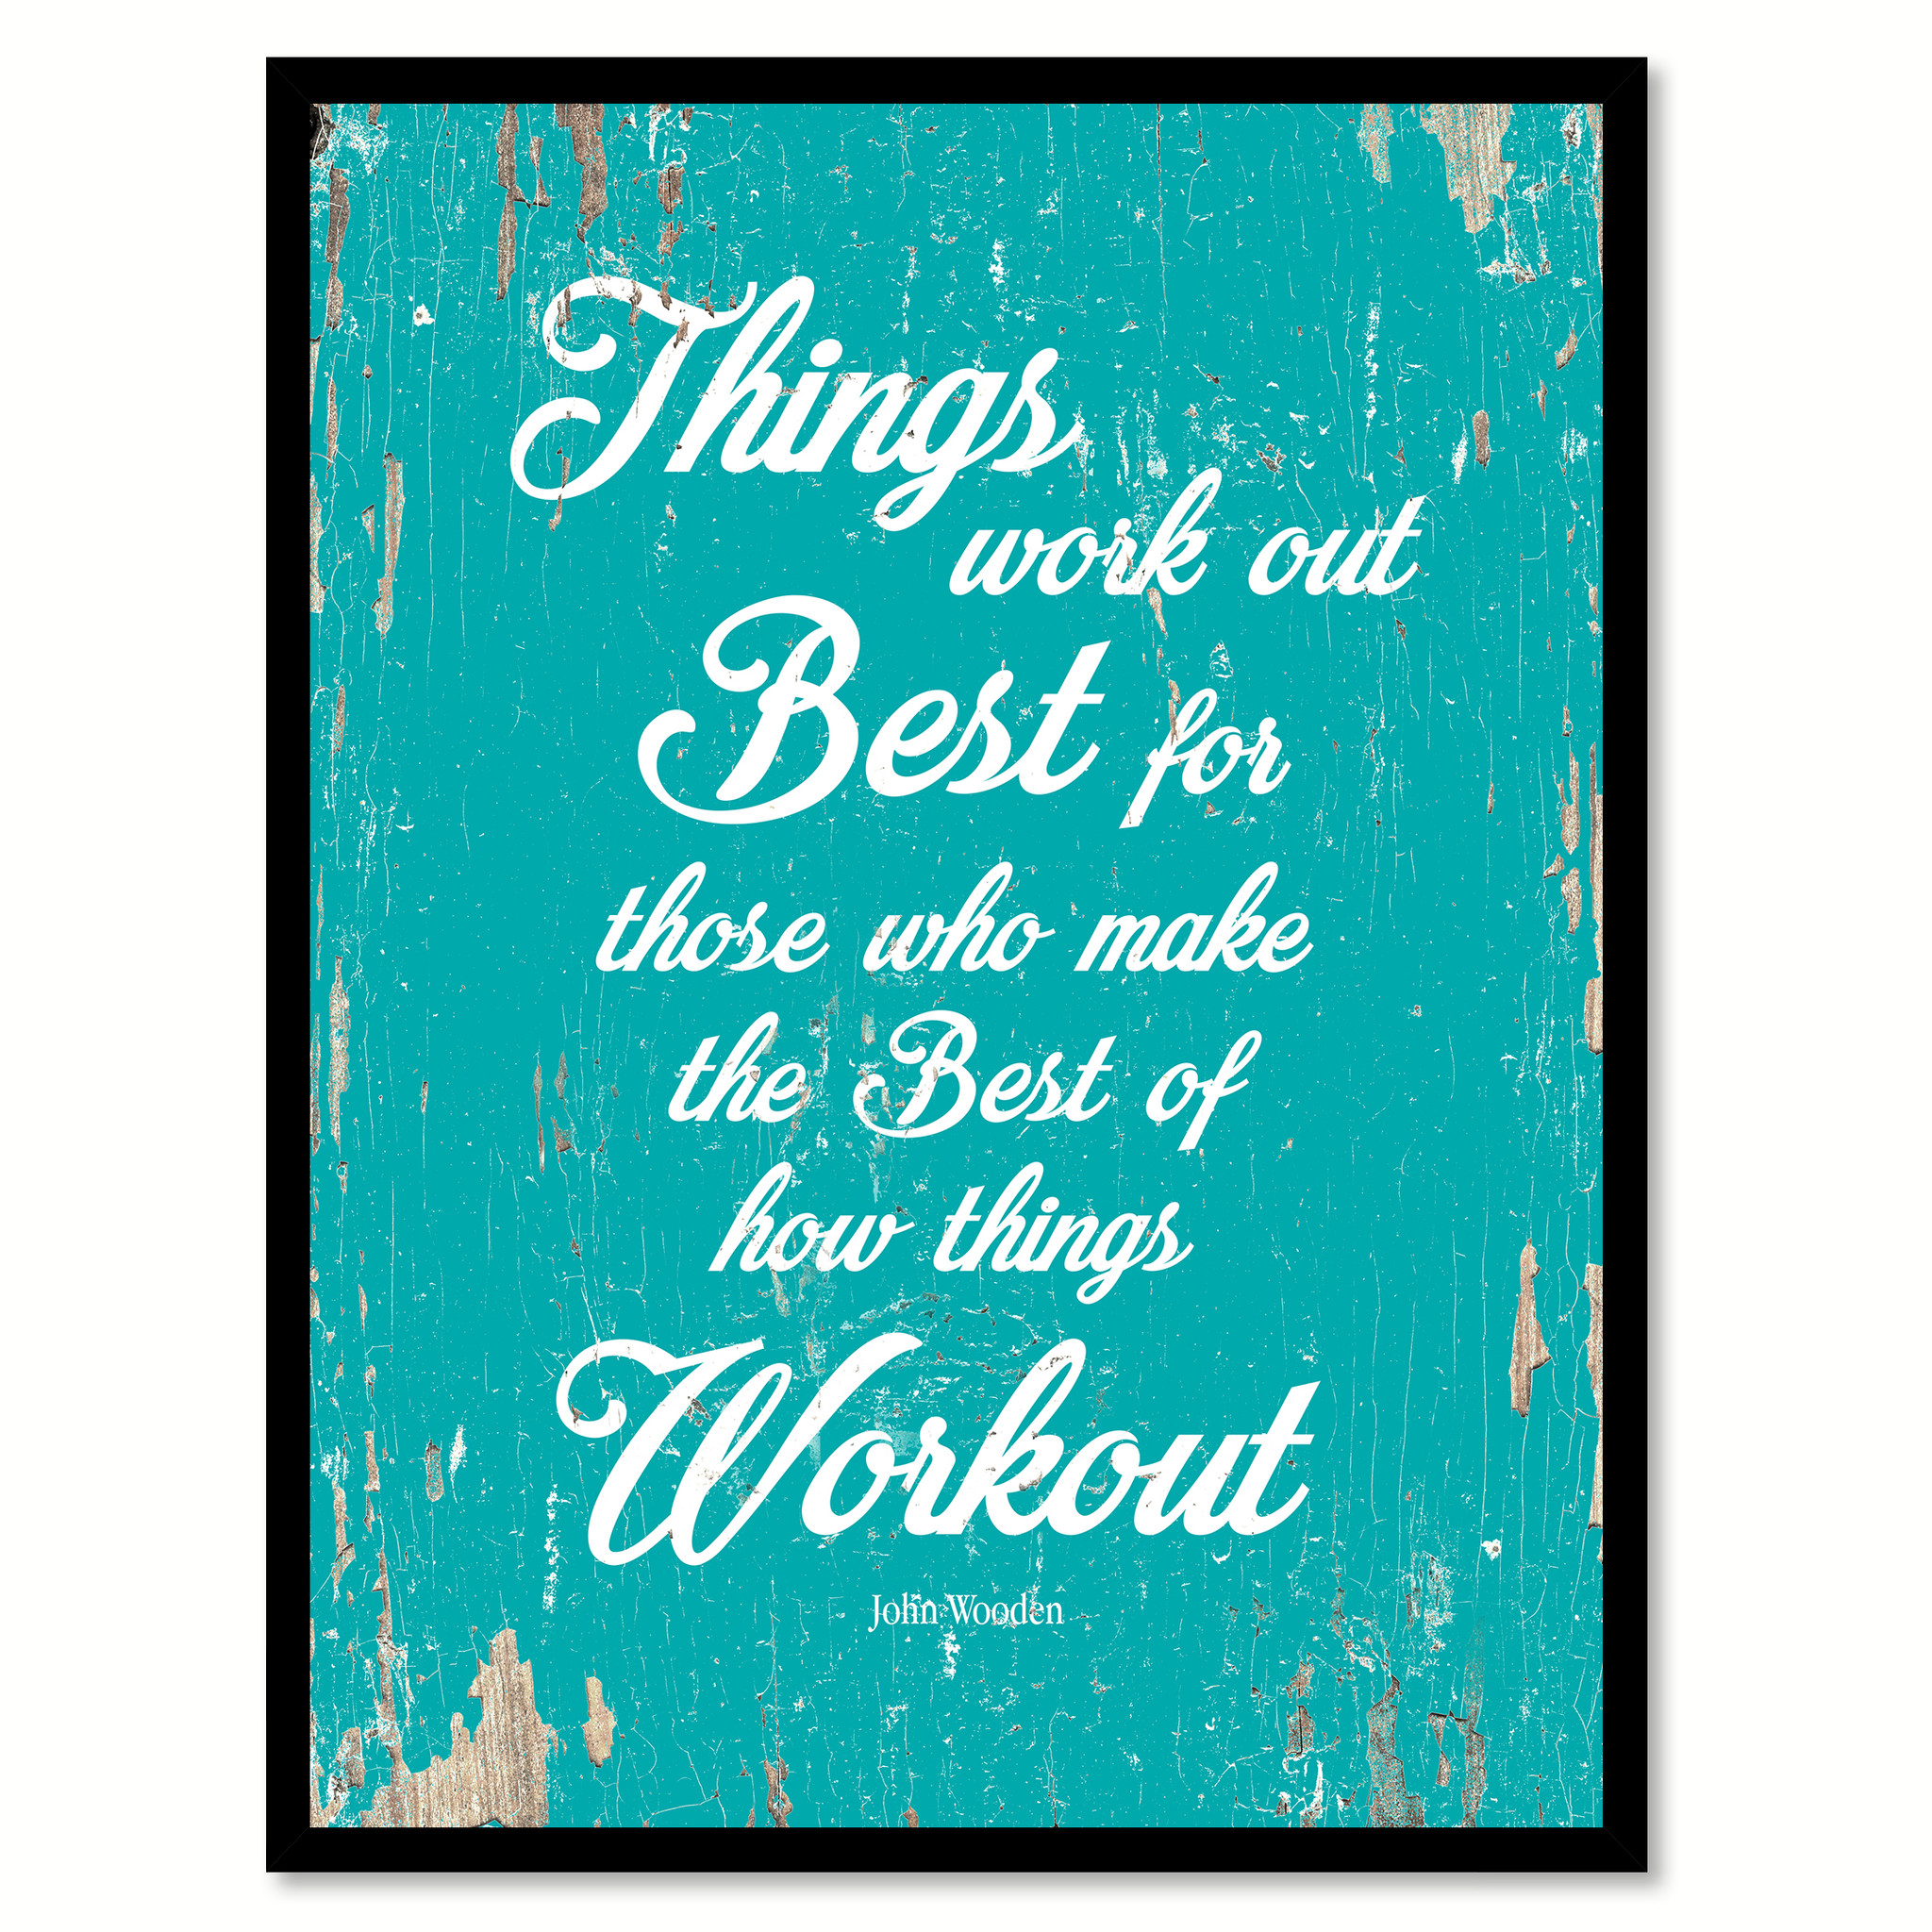 "Things Work Out Best For Those Who Make The Best Of How Things Workout - John Wooden Picture Frame Home Decor Wall Art Gifts - 7""x9\"""